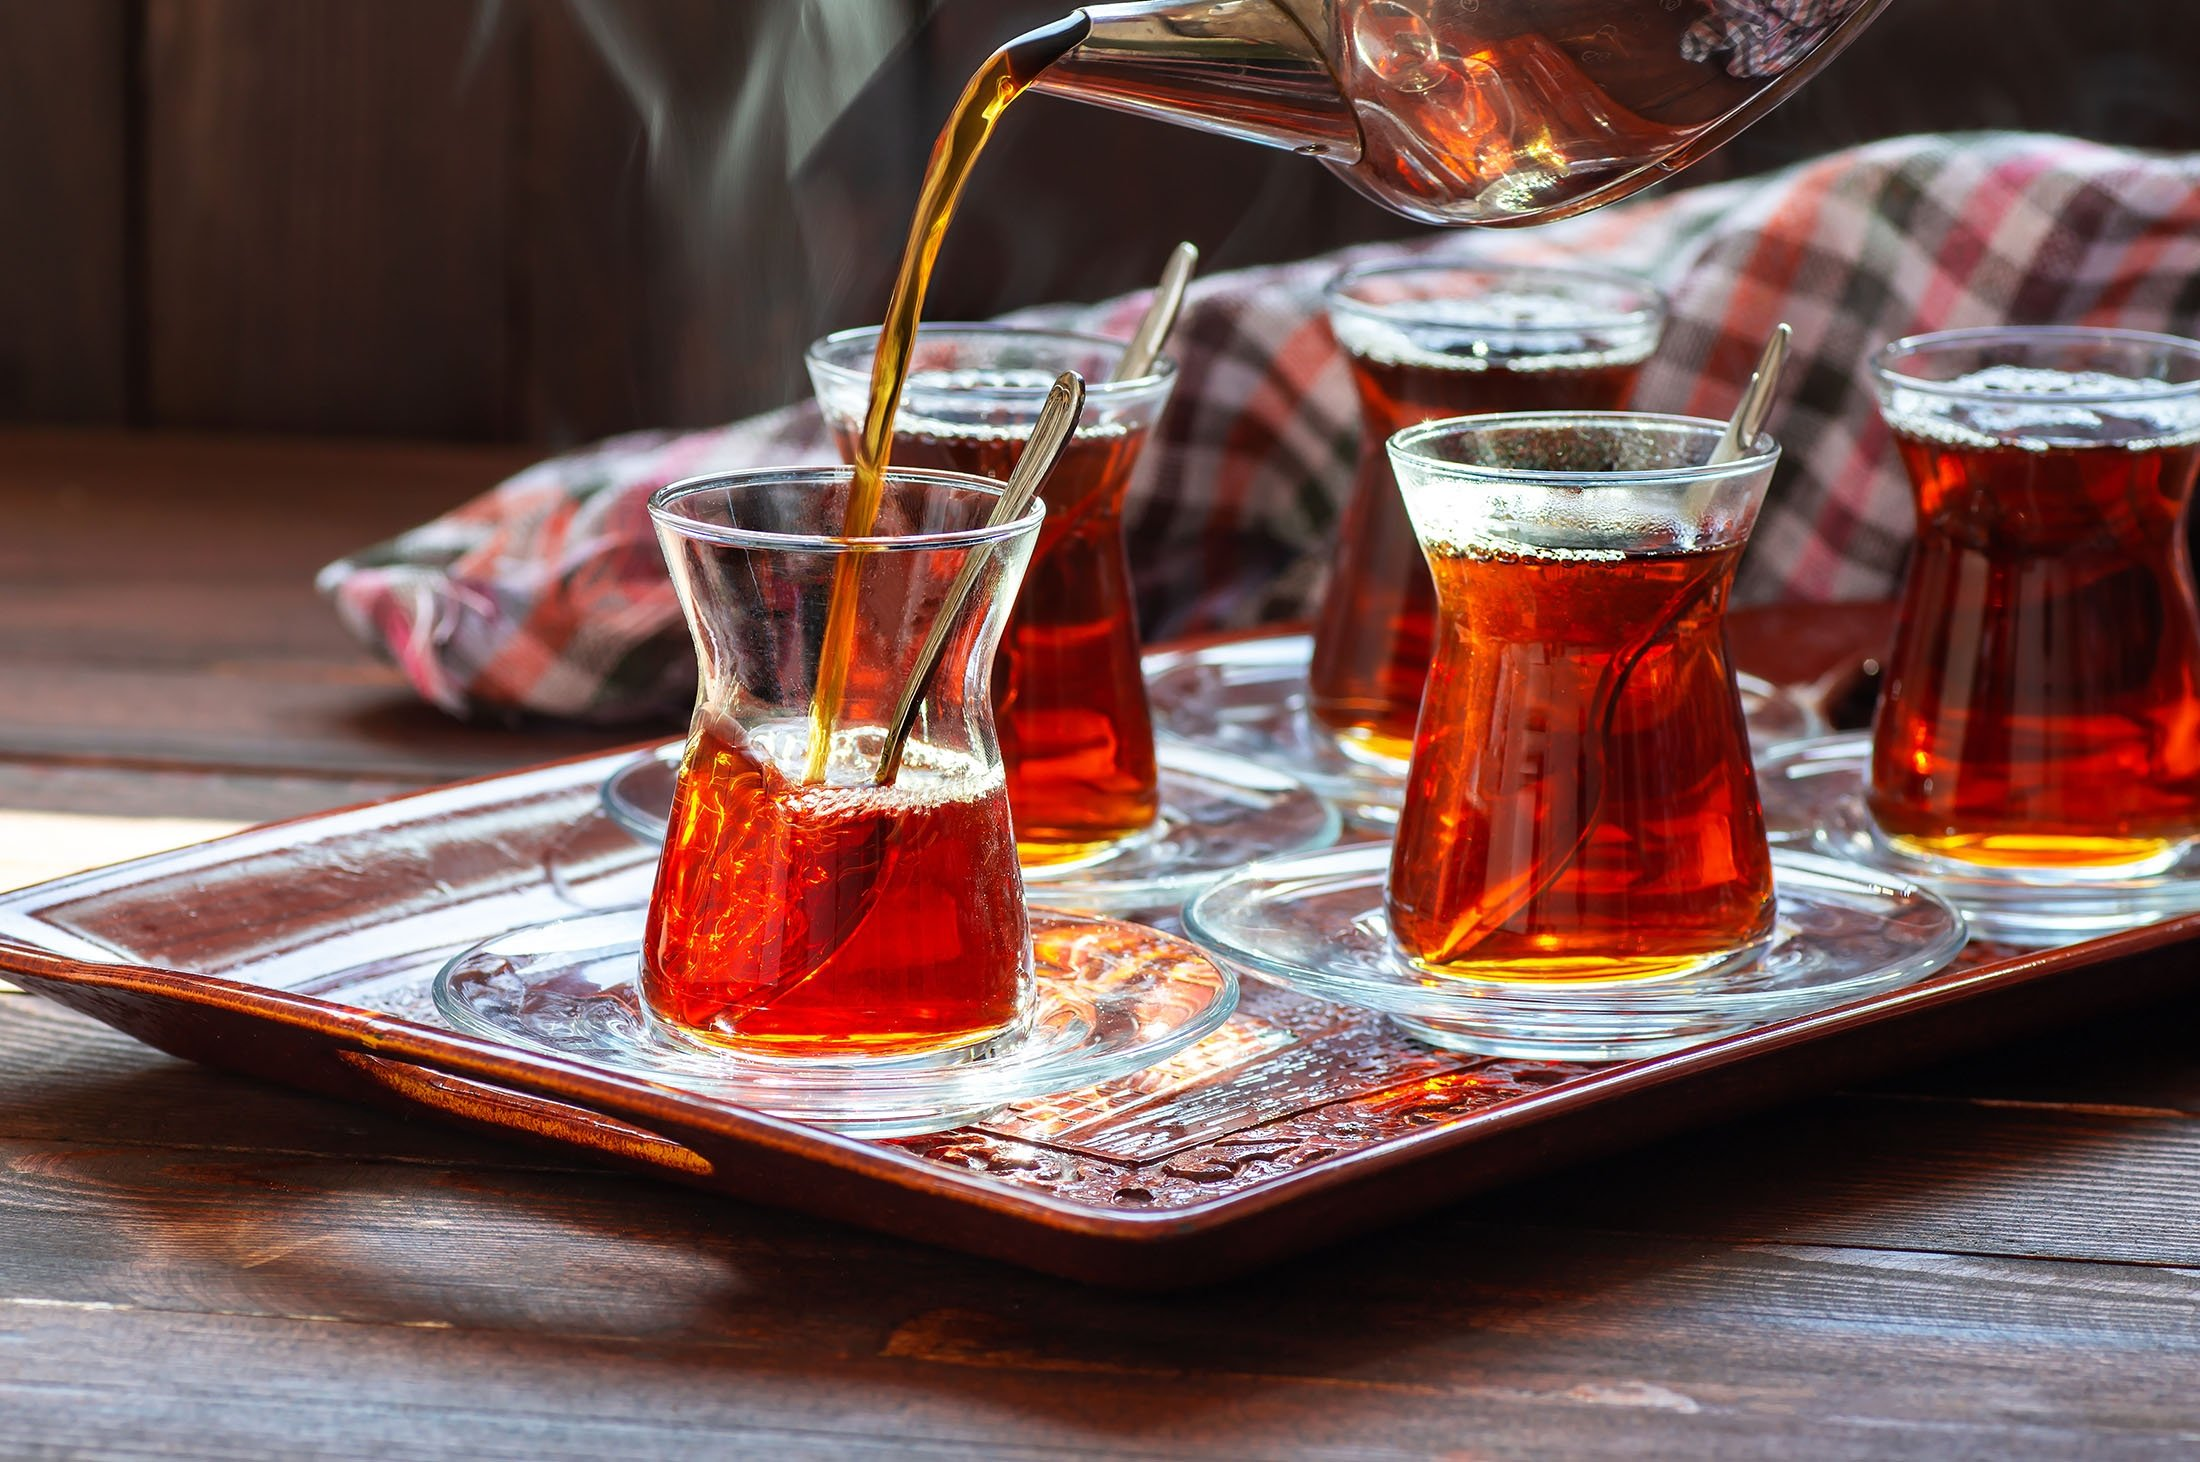 Turkish tea glasses are a widely used measurement in cooking. (Shutterstock Photo)